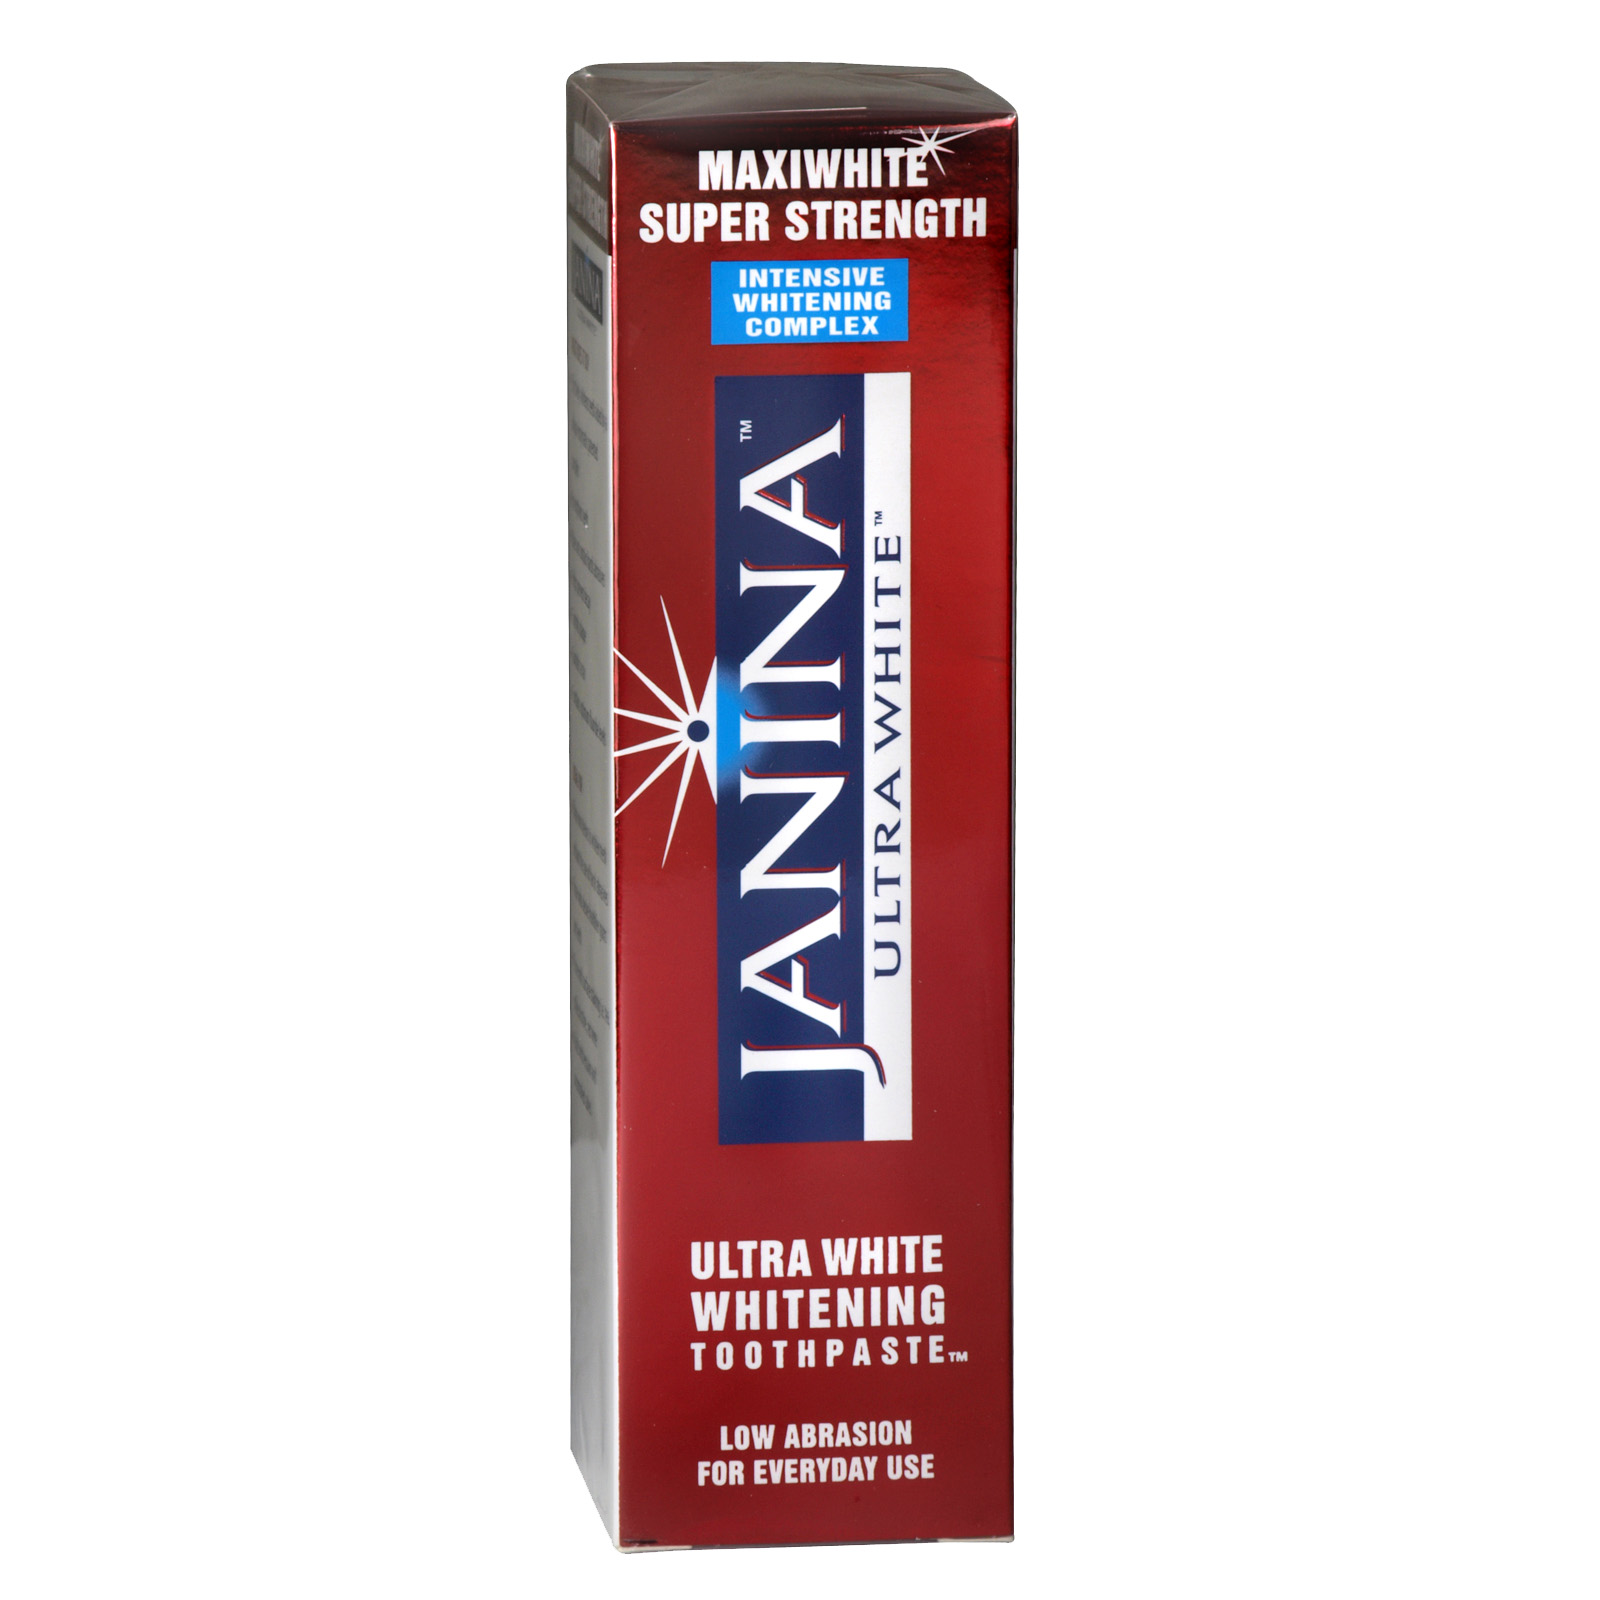 JANINA MAXI WHITENING TOOTHPASTE 75ML SUPER STRENGTH RED